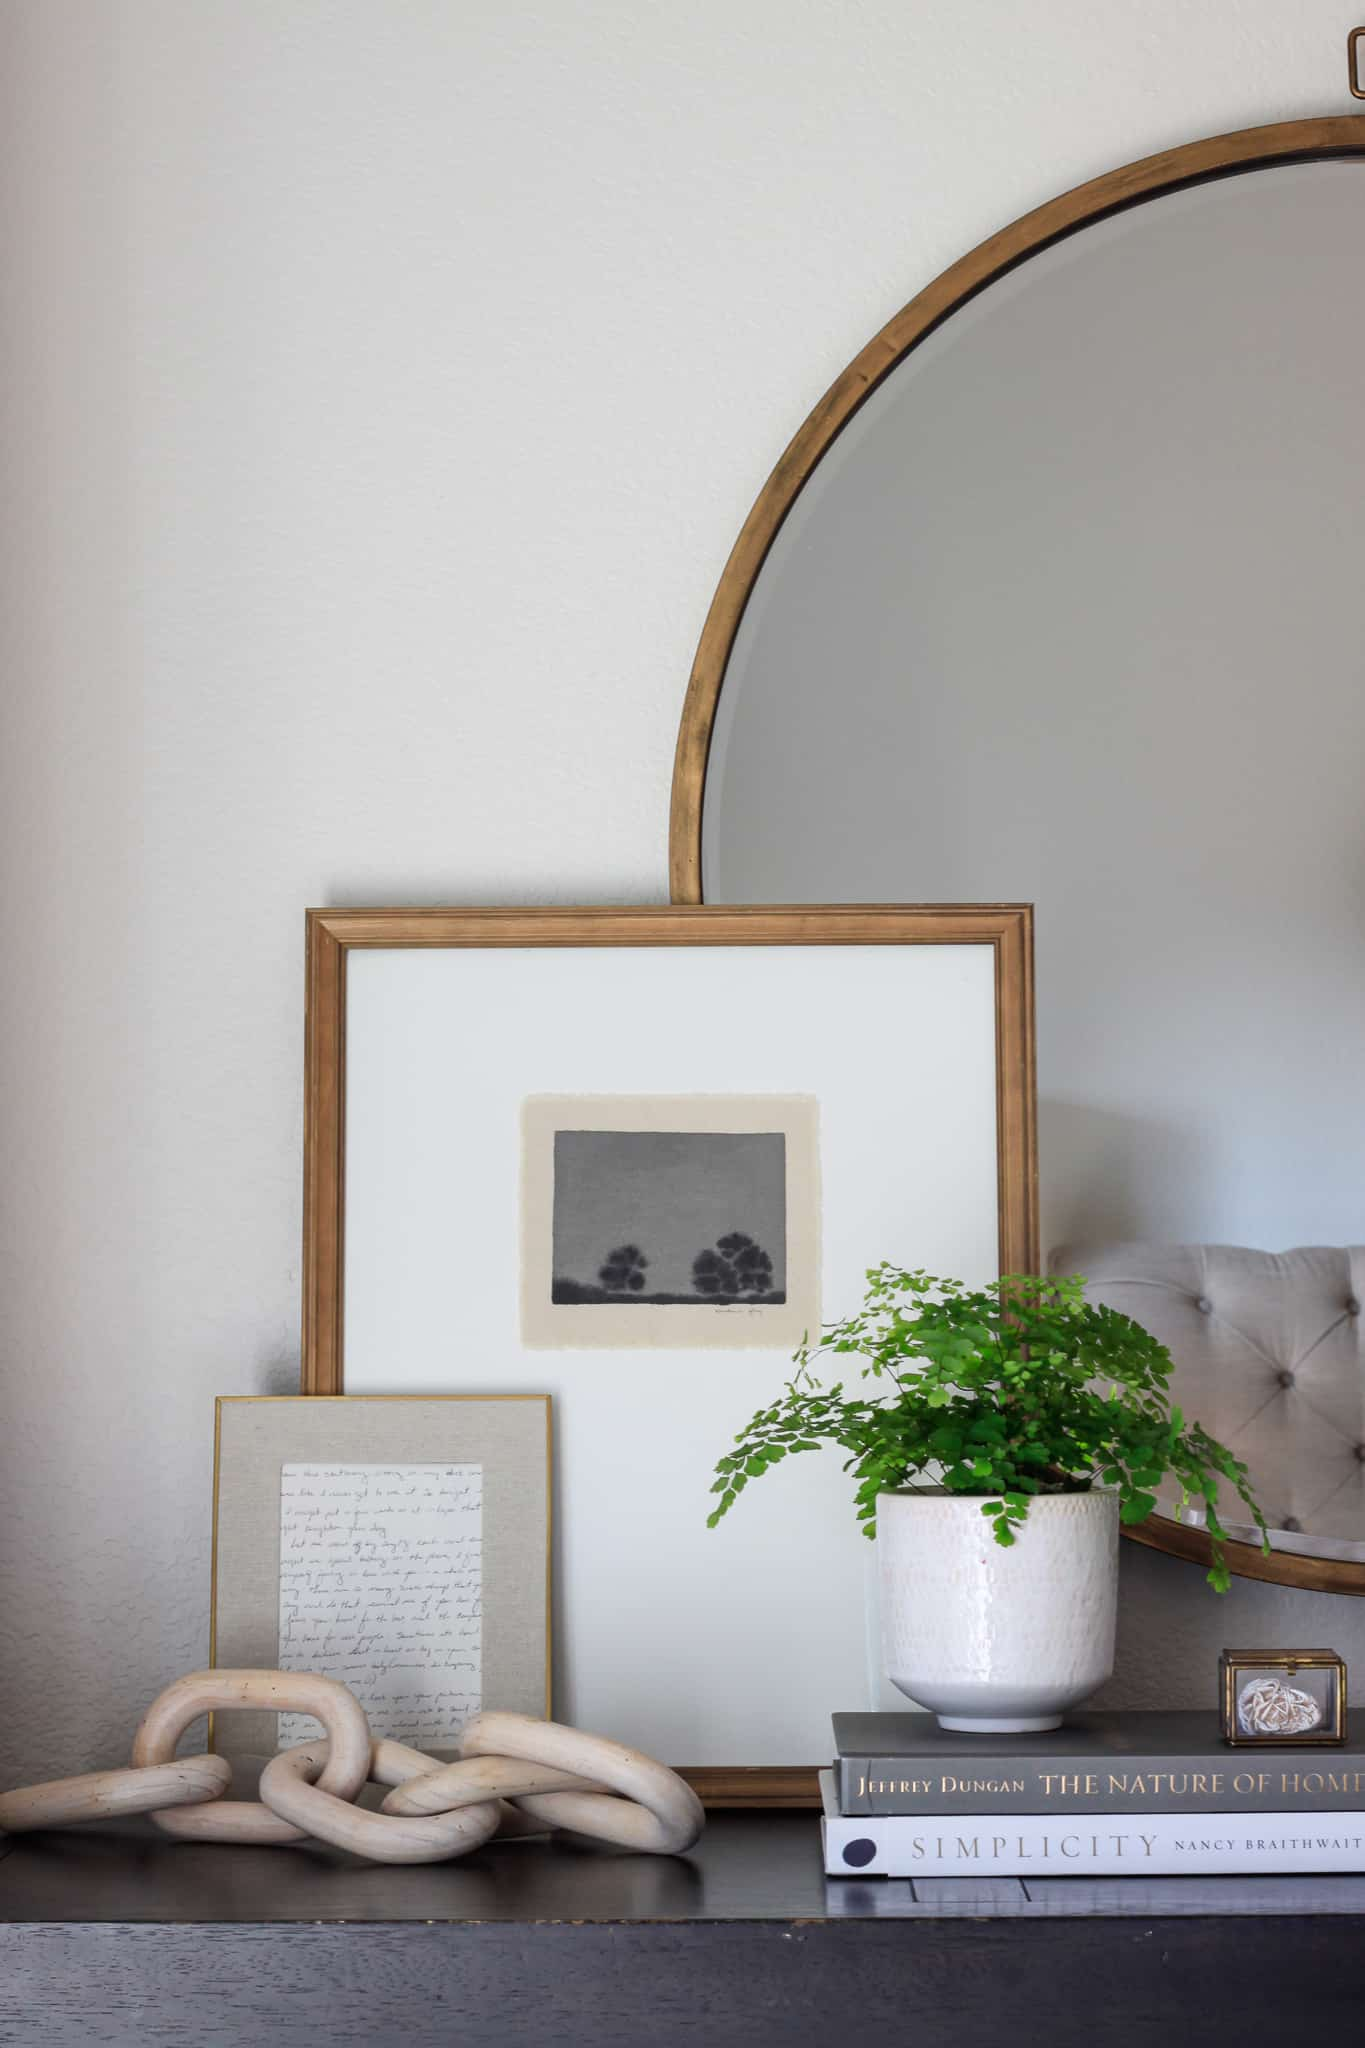 art layered in front of round mirror with plant